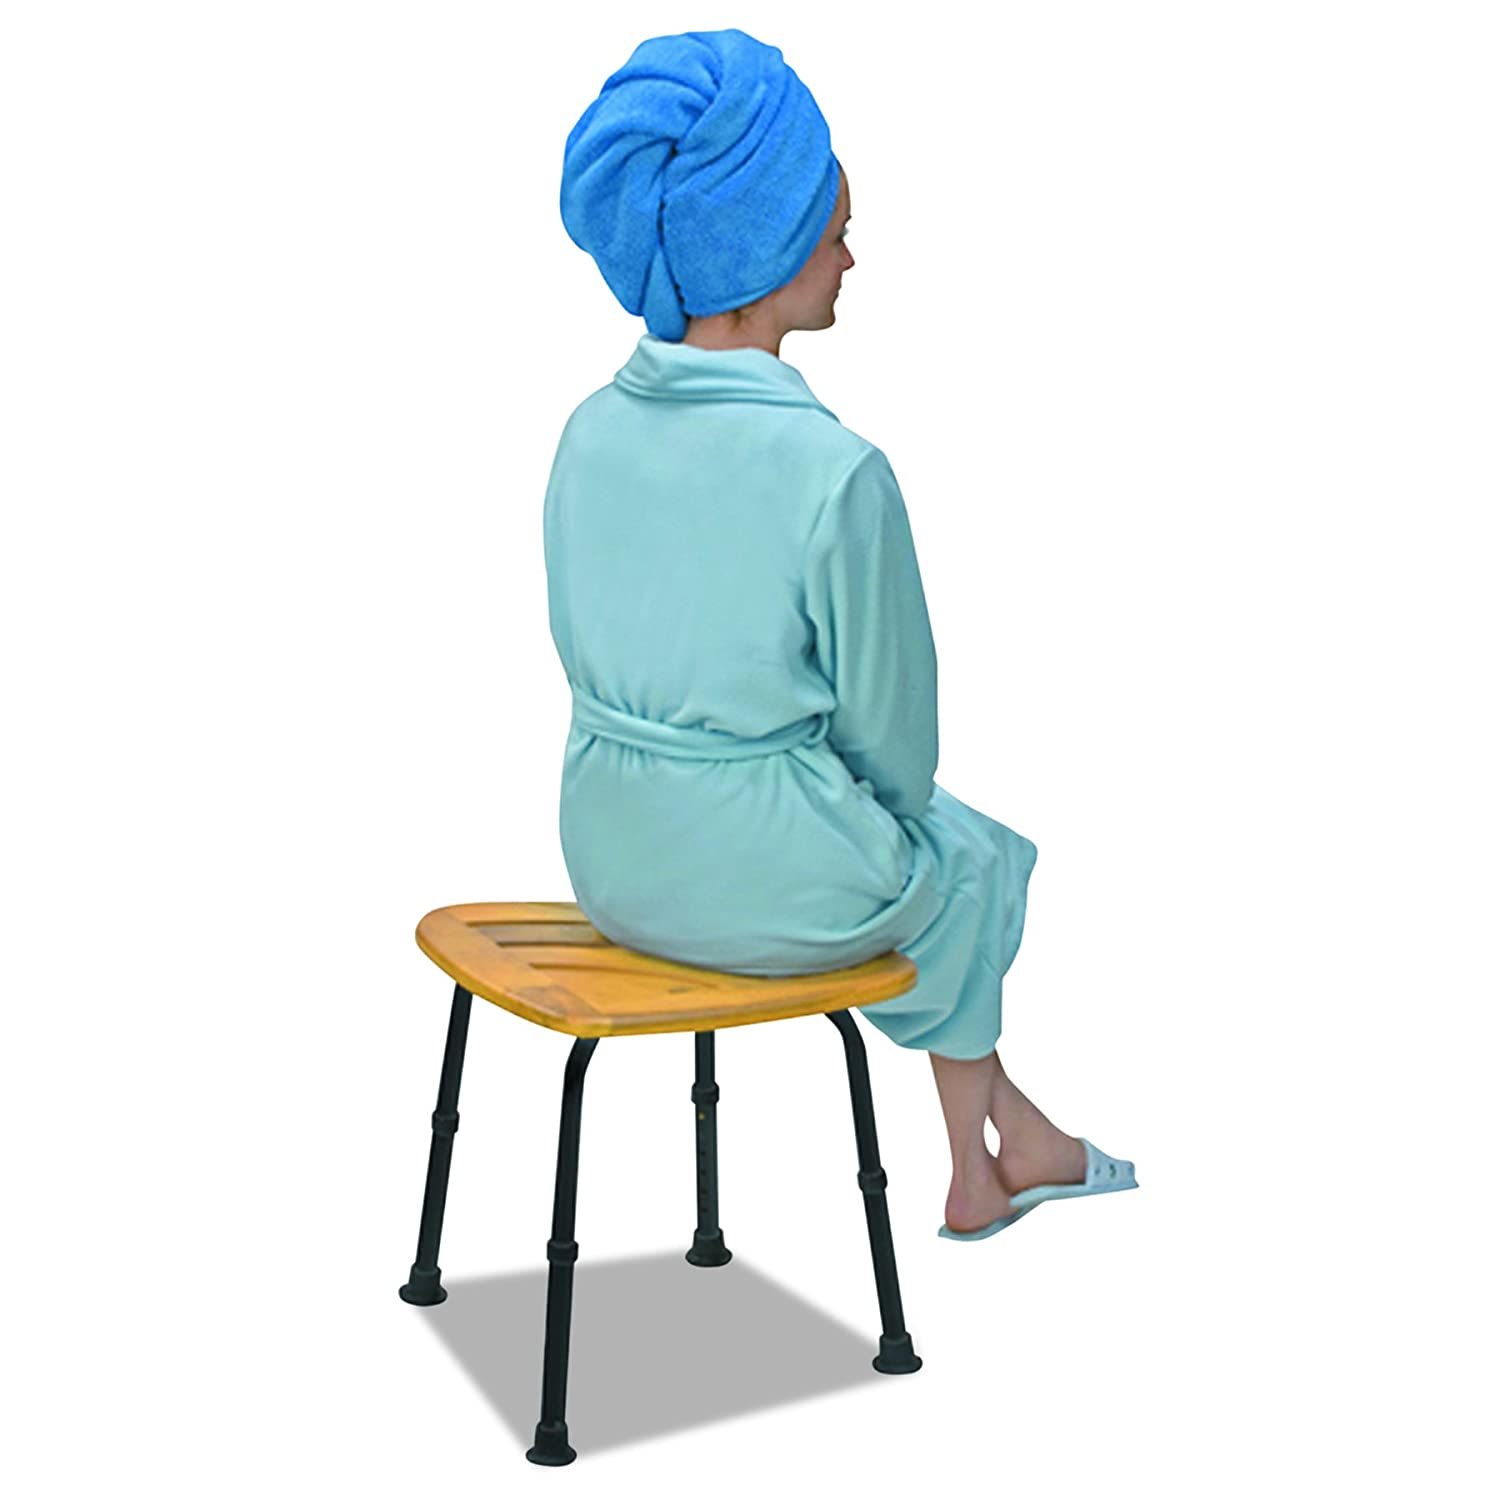 Amazon.com: Bamboo Shower Bench Shower Stool - Bath and Shower Chair ...